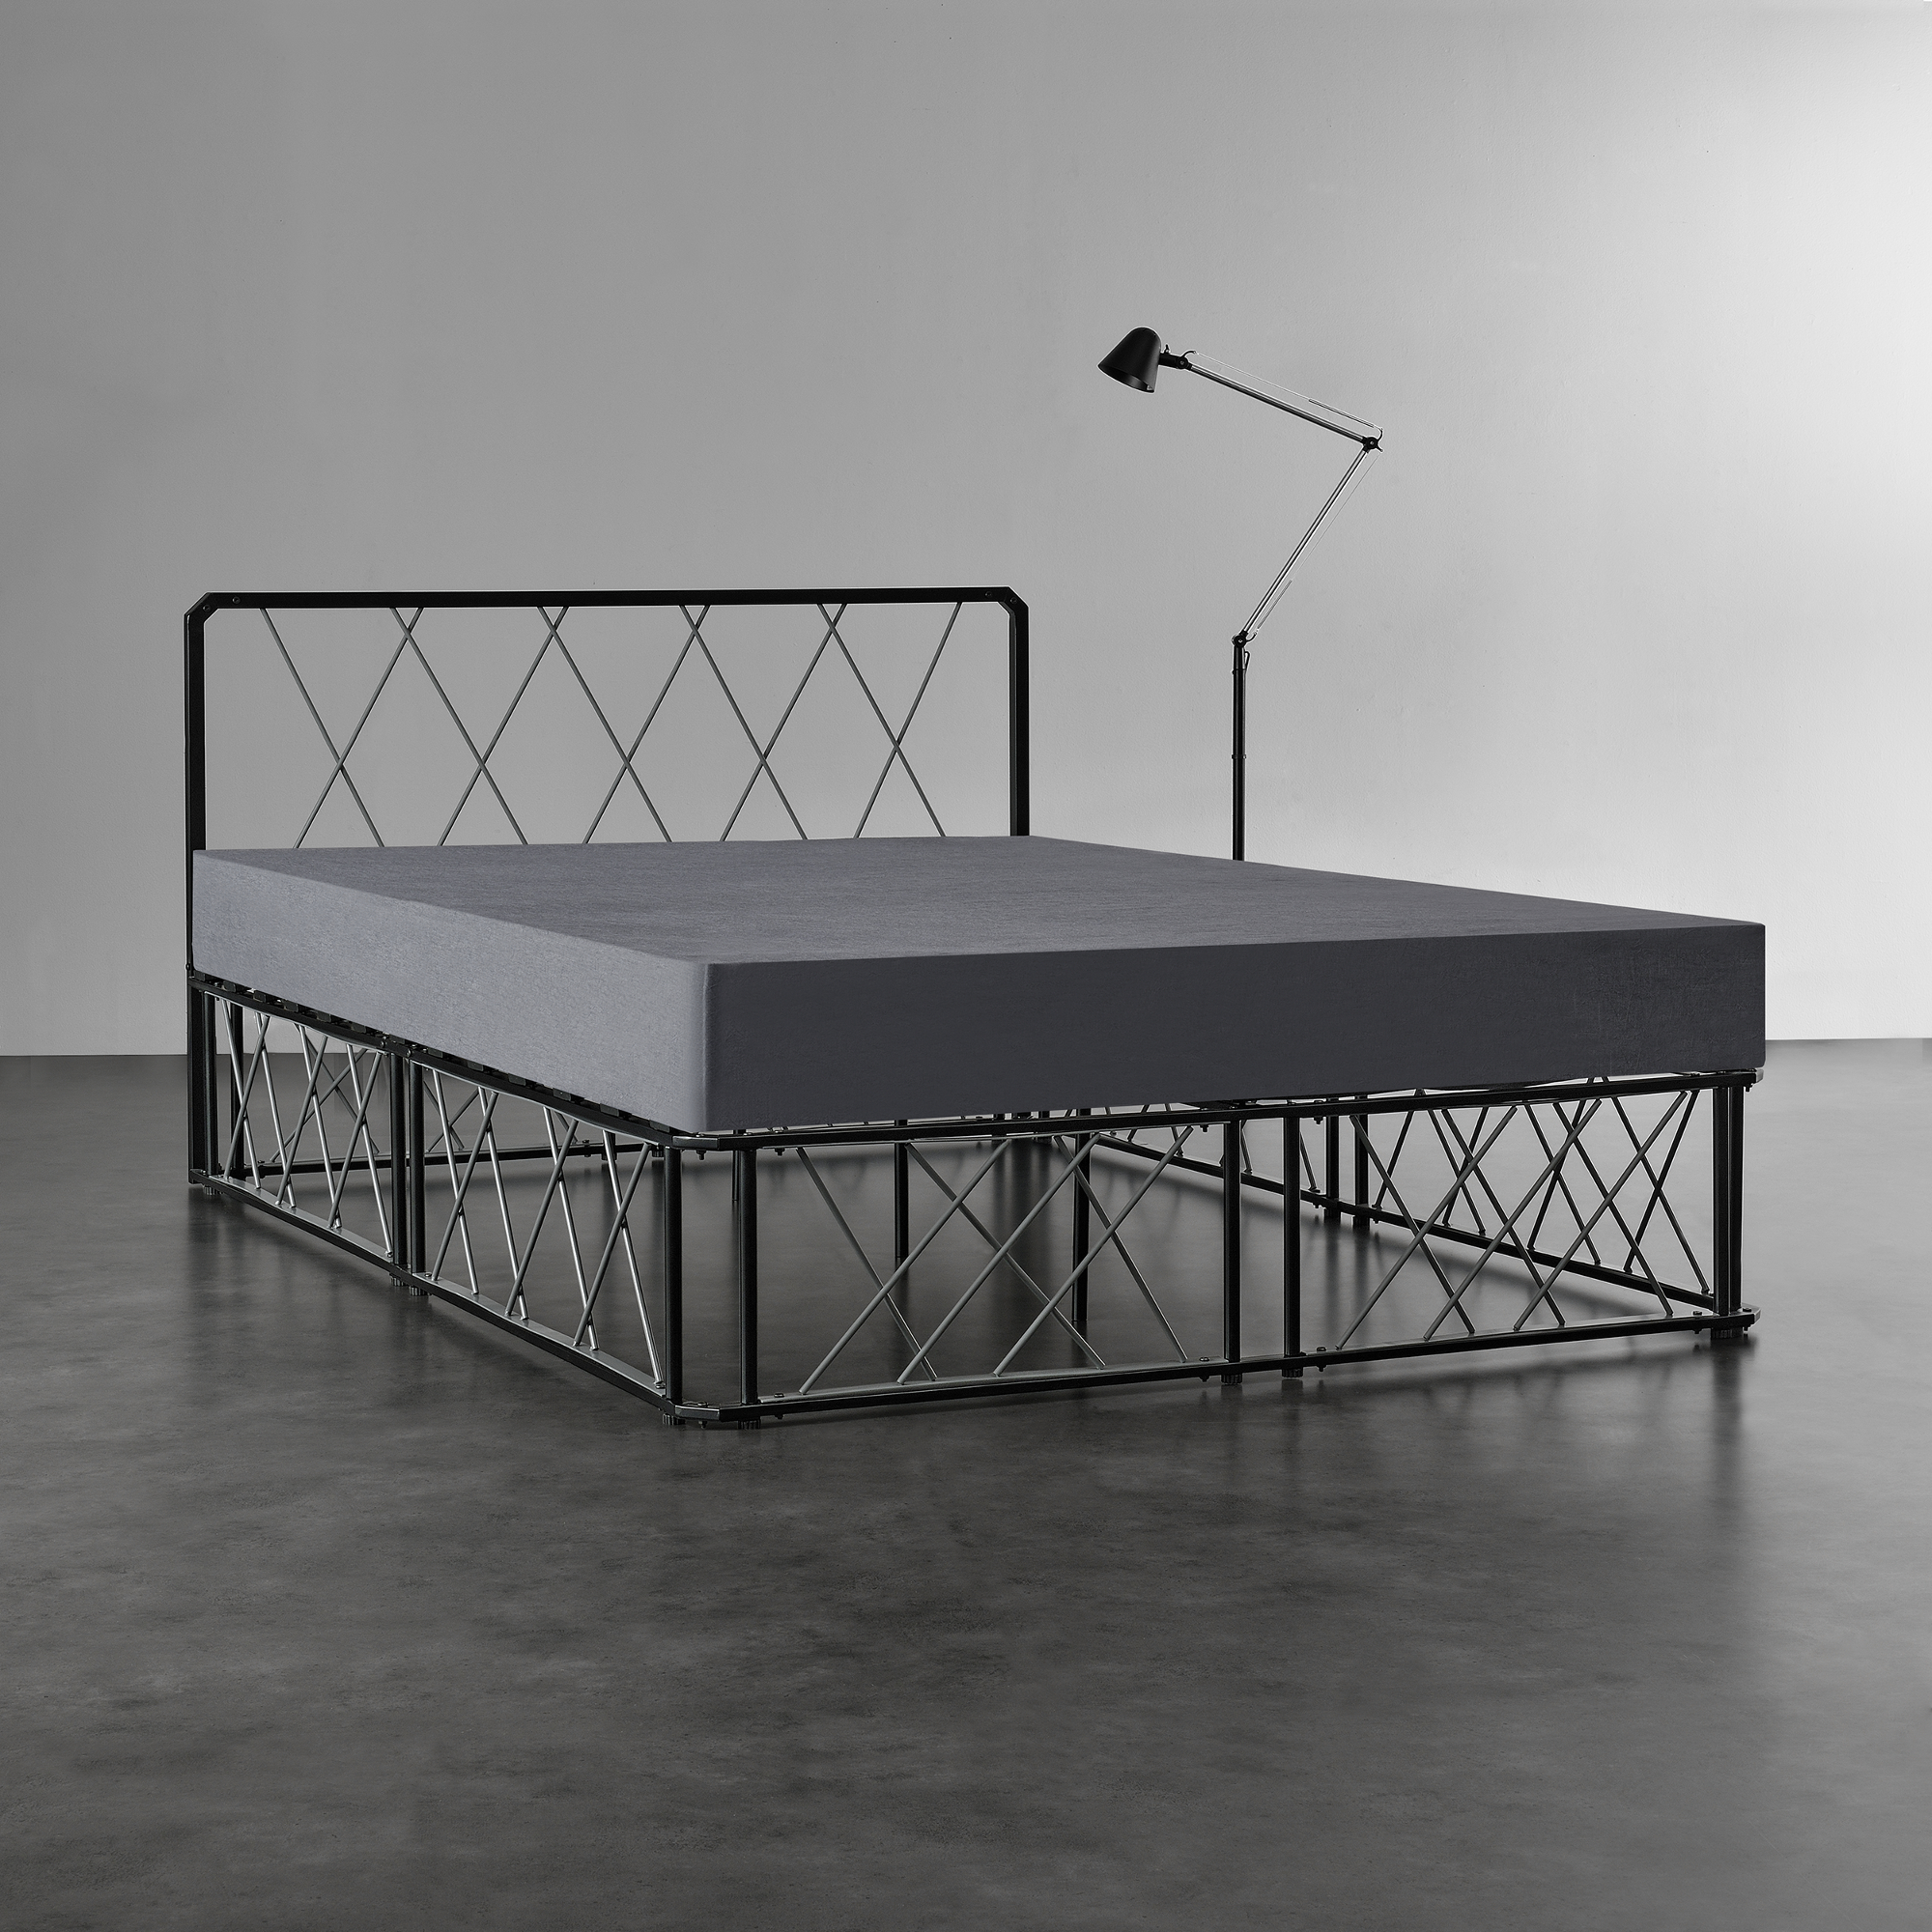 metallbett 140x200 schwarz grau bettgestell design bett schlafzimmer 4251155589216 ebay. Black Bedroom Furniture Sets. Home Design Ideas